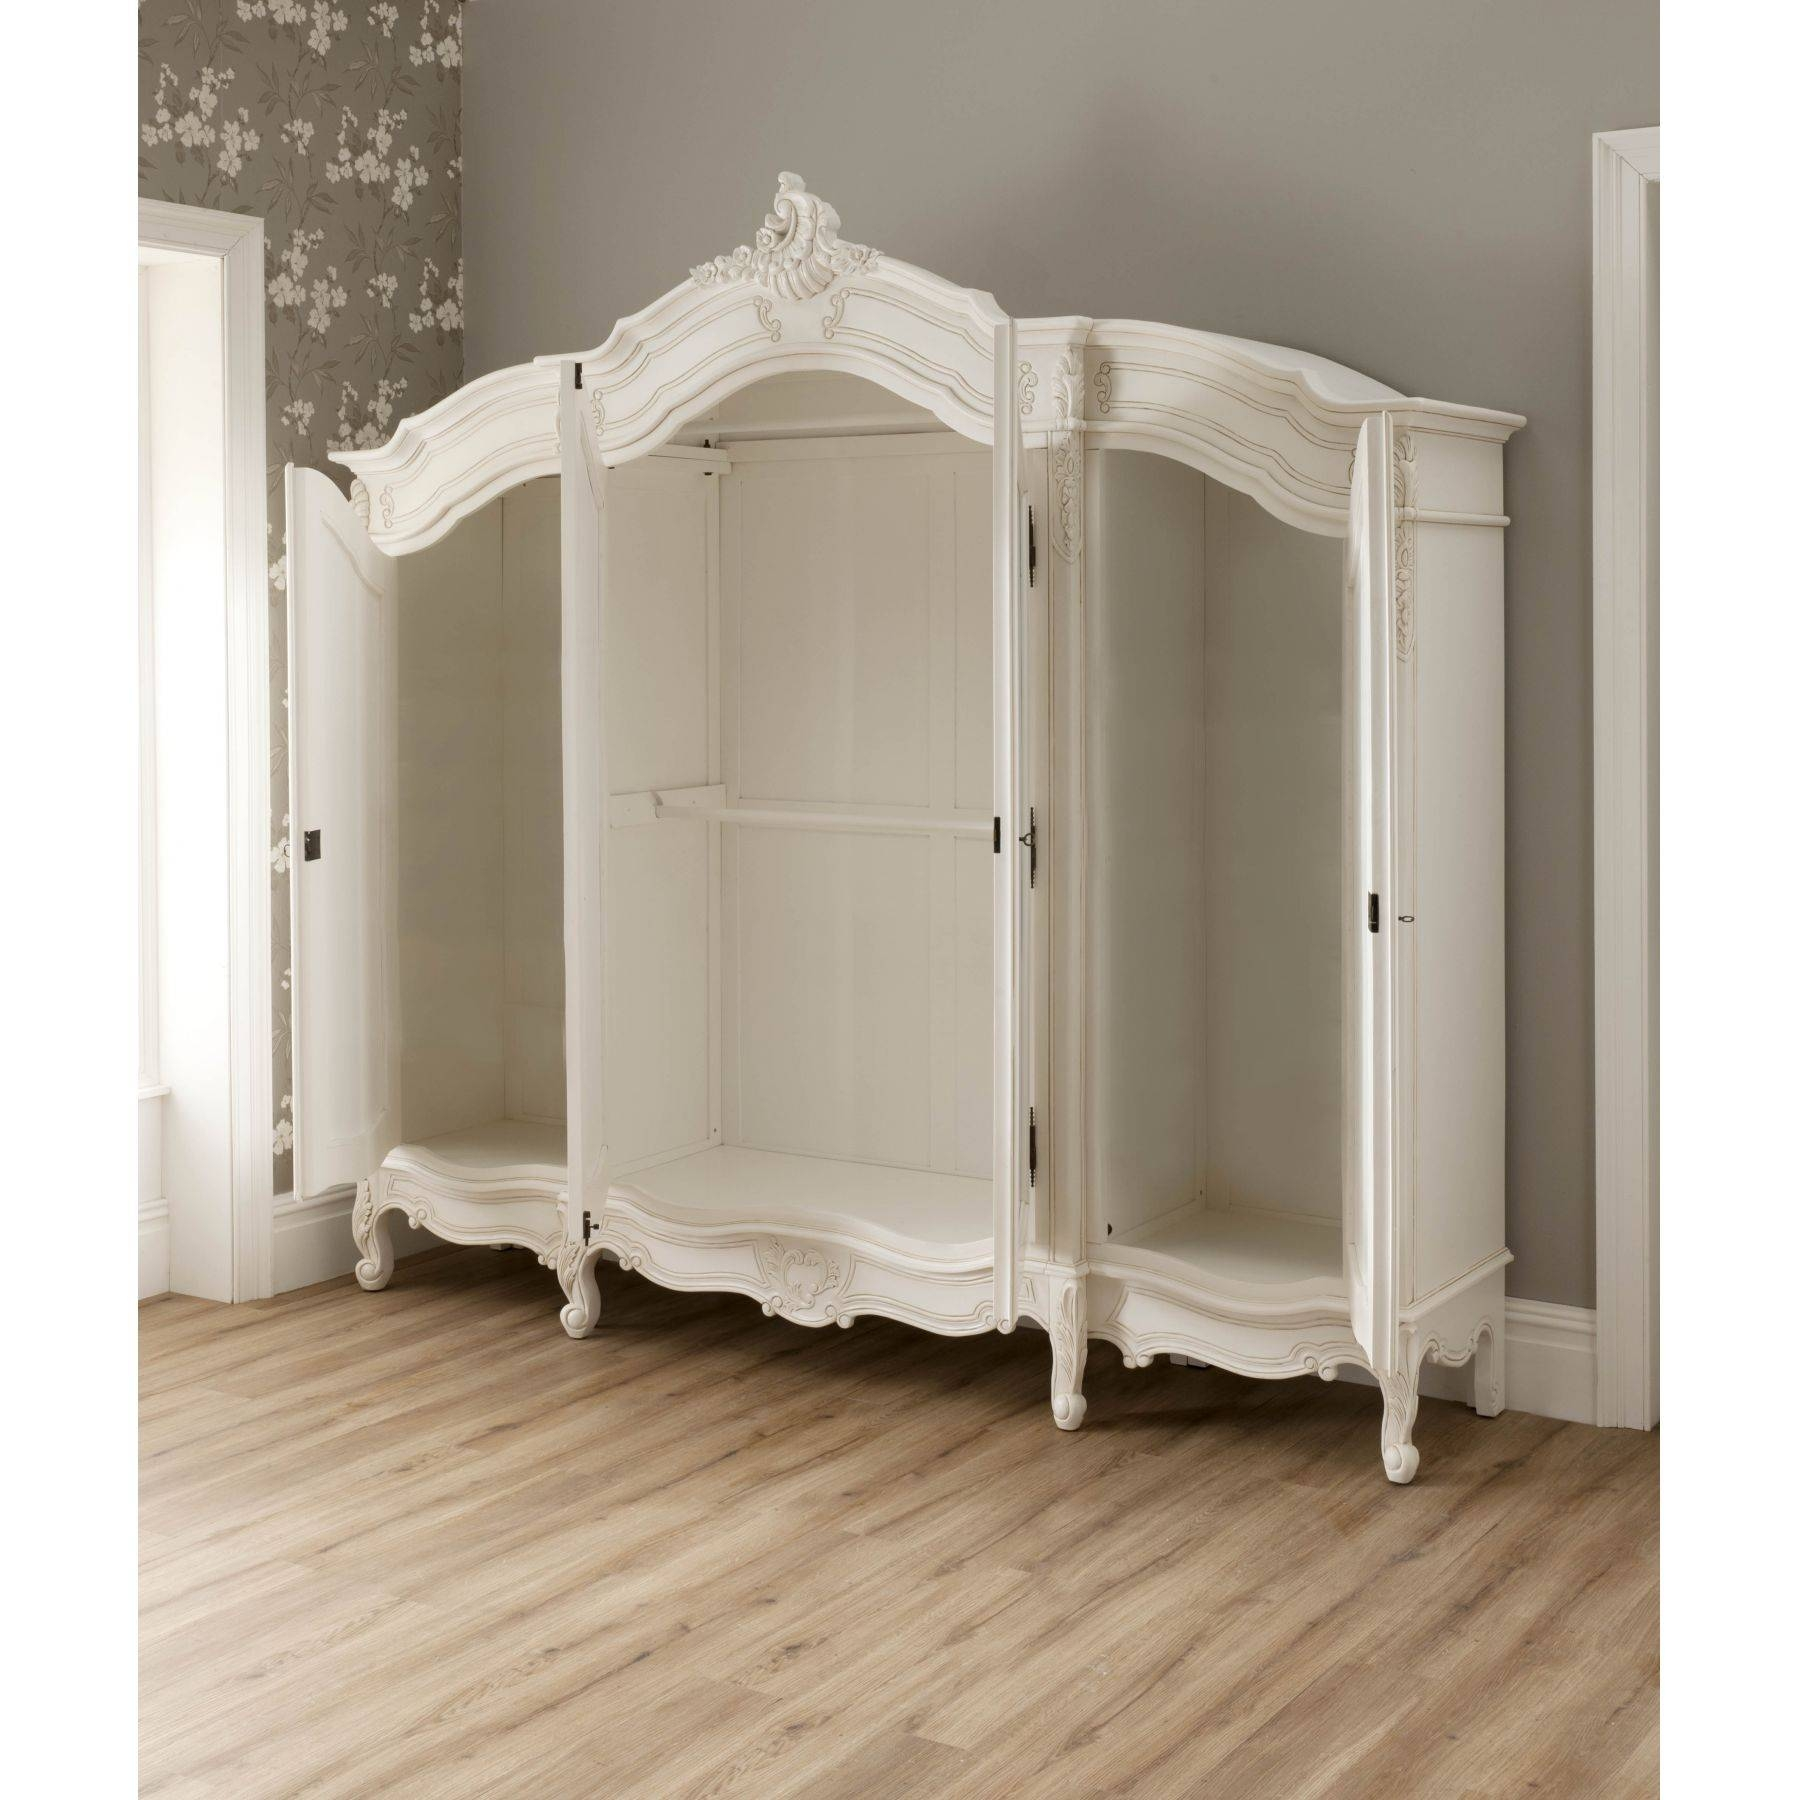 Rochelle 4 Door Antique French Wardrobe intended for French Armoire Wardrobes (Image 13 of 15)